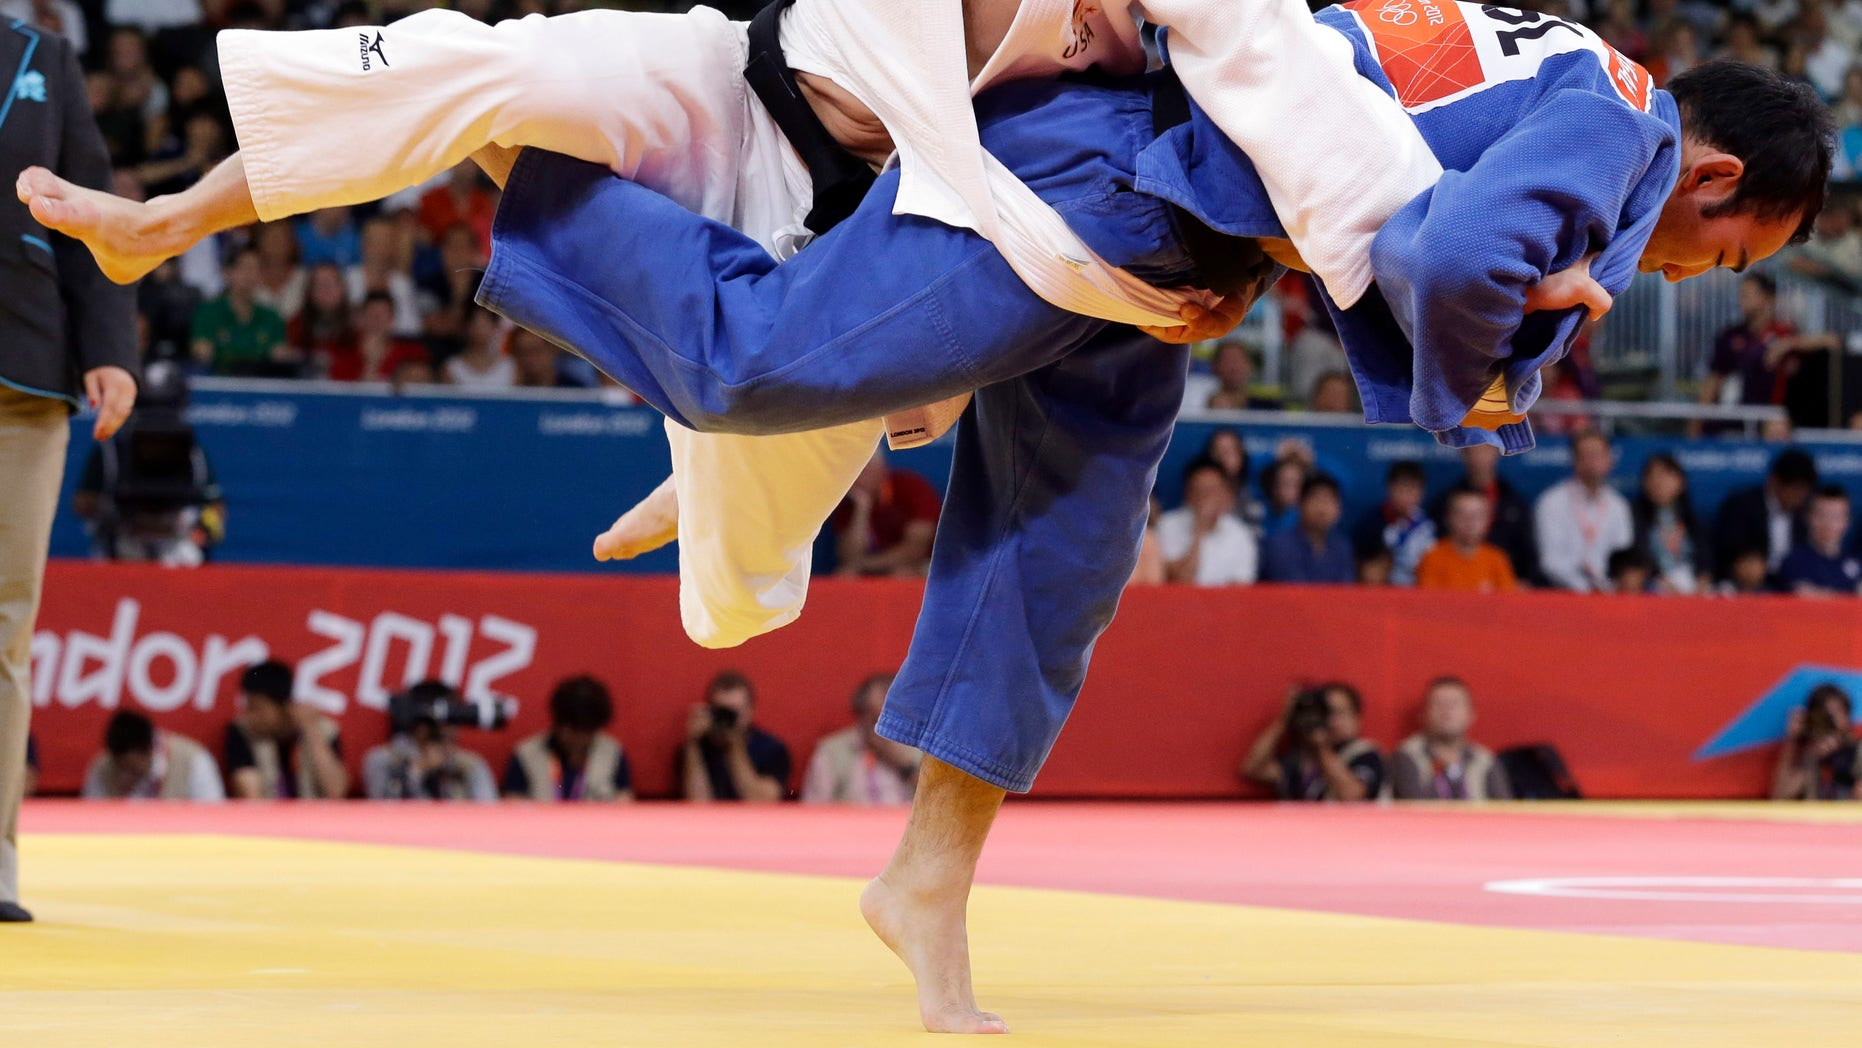 US judo fighter expelled from Olympics after testing